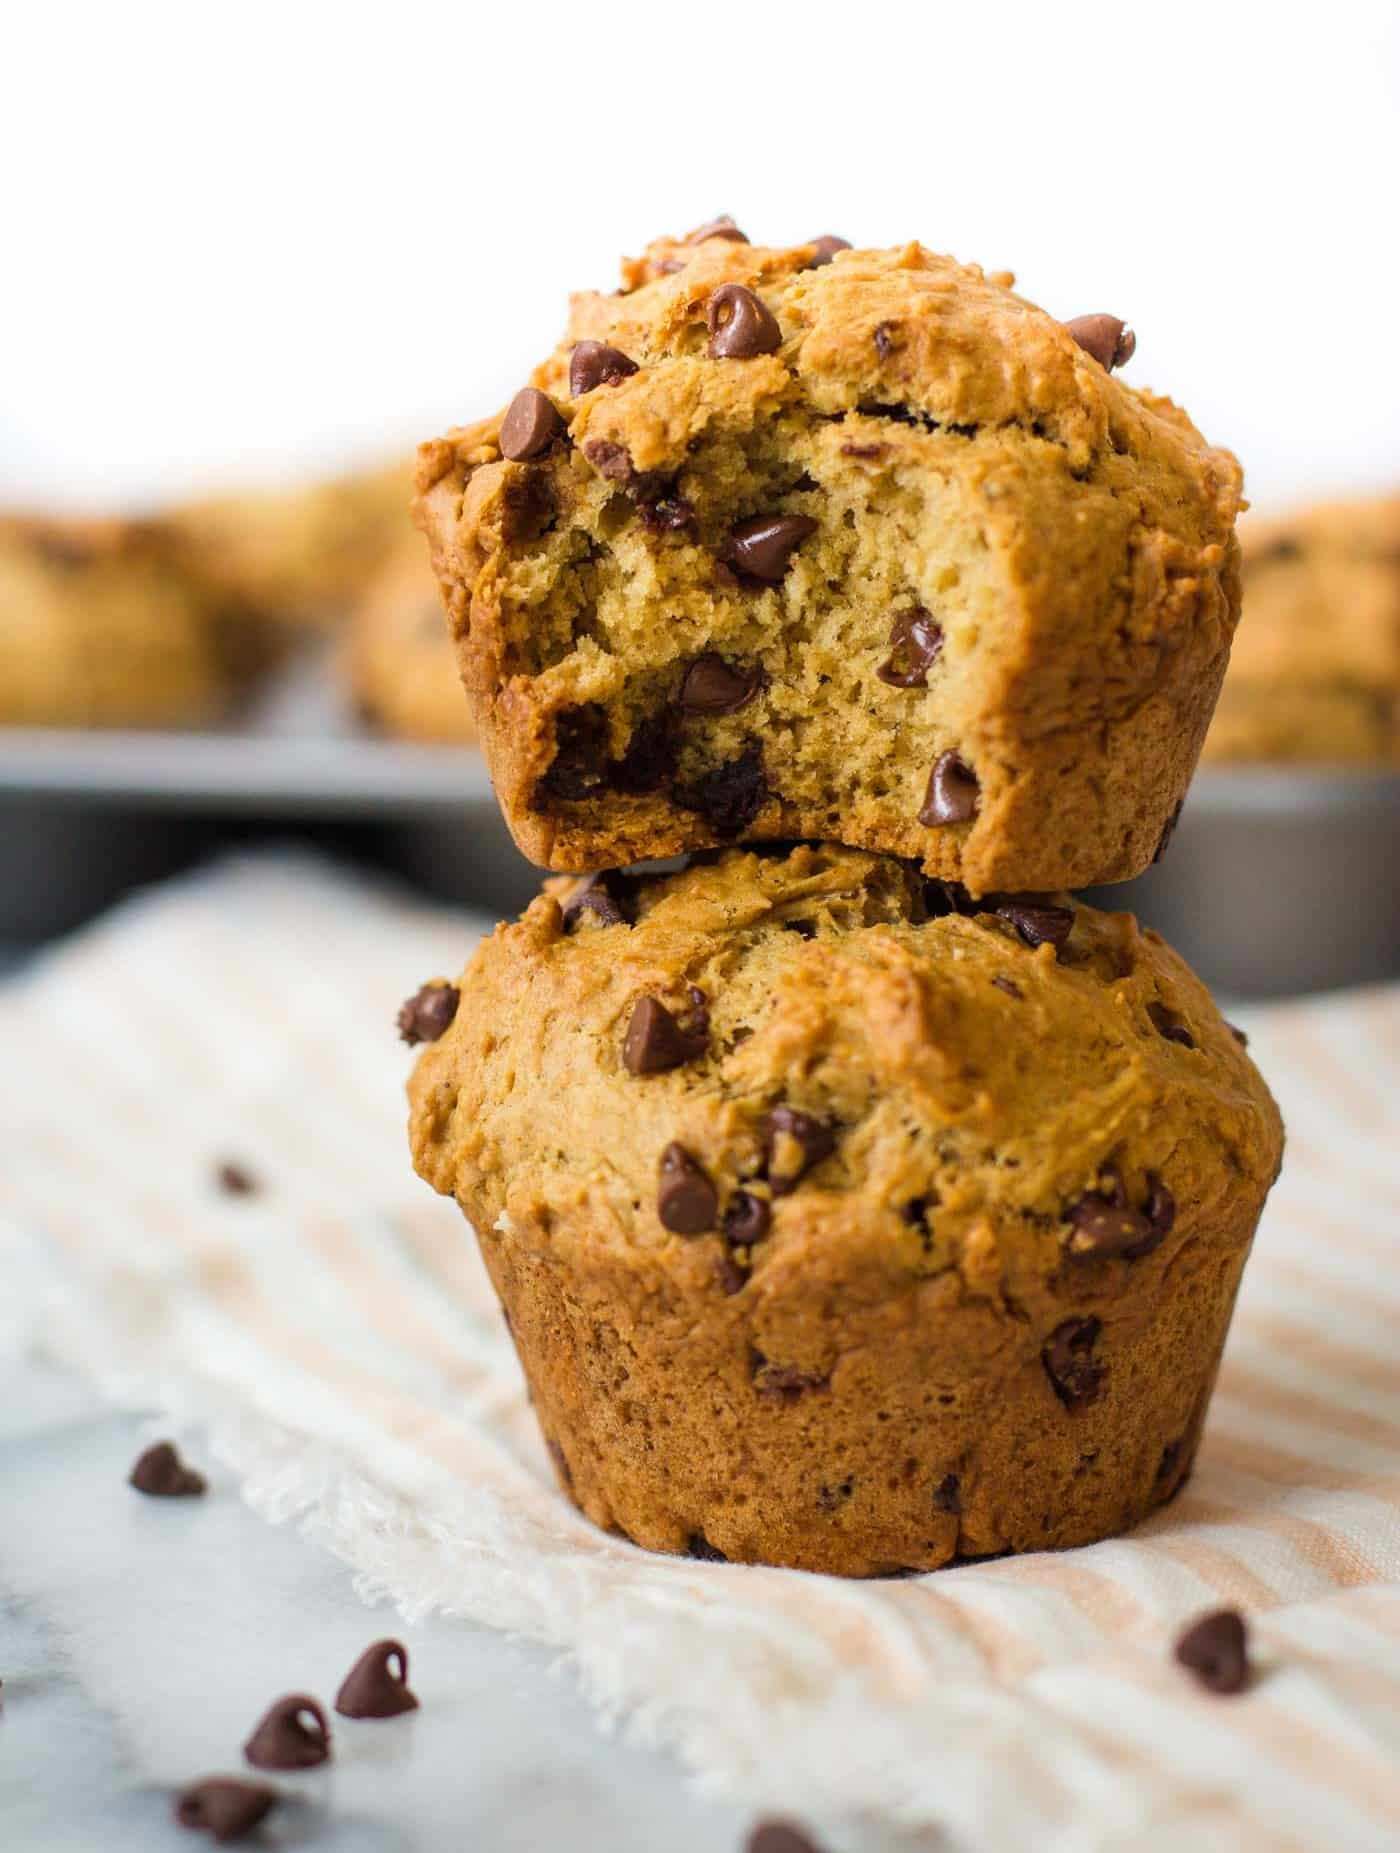 What Are The Ingredients For Chocolate Chip Muffins